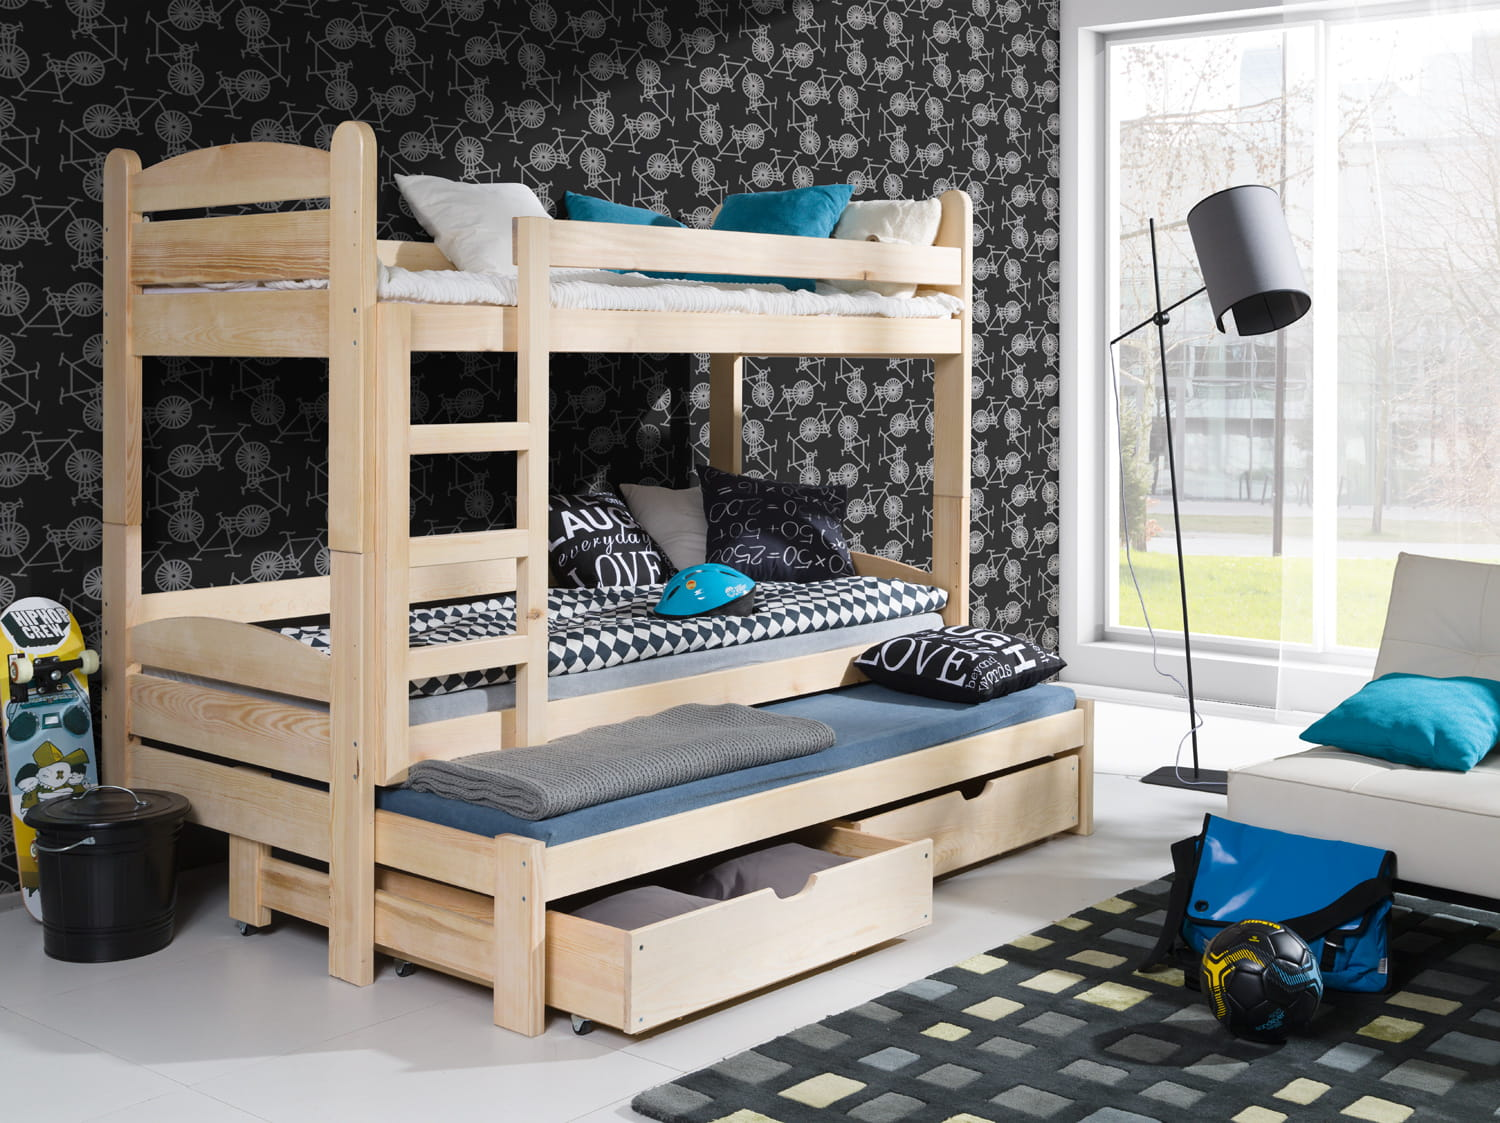 etagenbett luis etagenbett kinder etagenbett f r 3. Black Bedroom Furniture Sets. Home Design Ideas